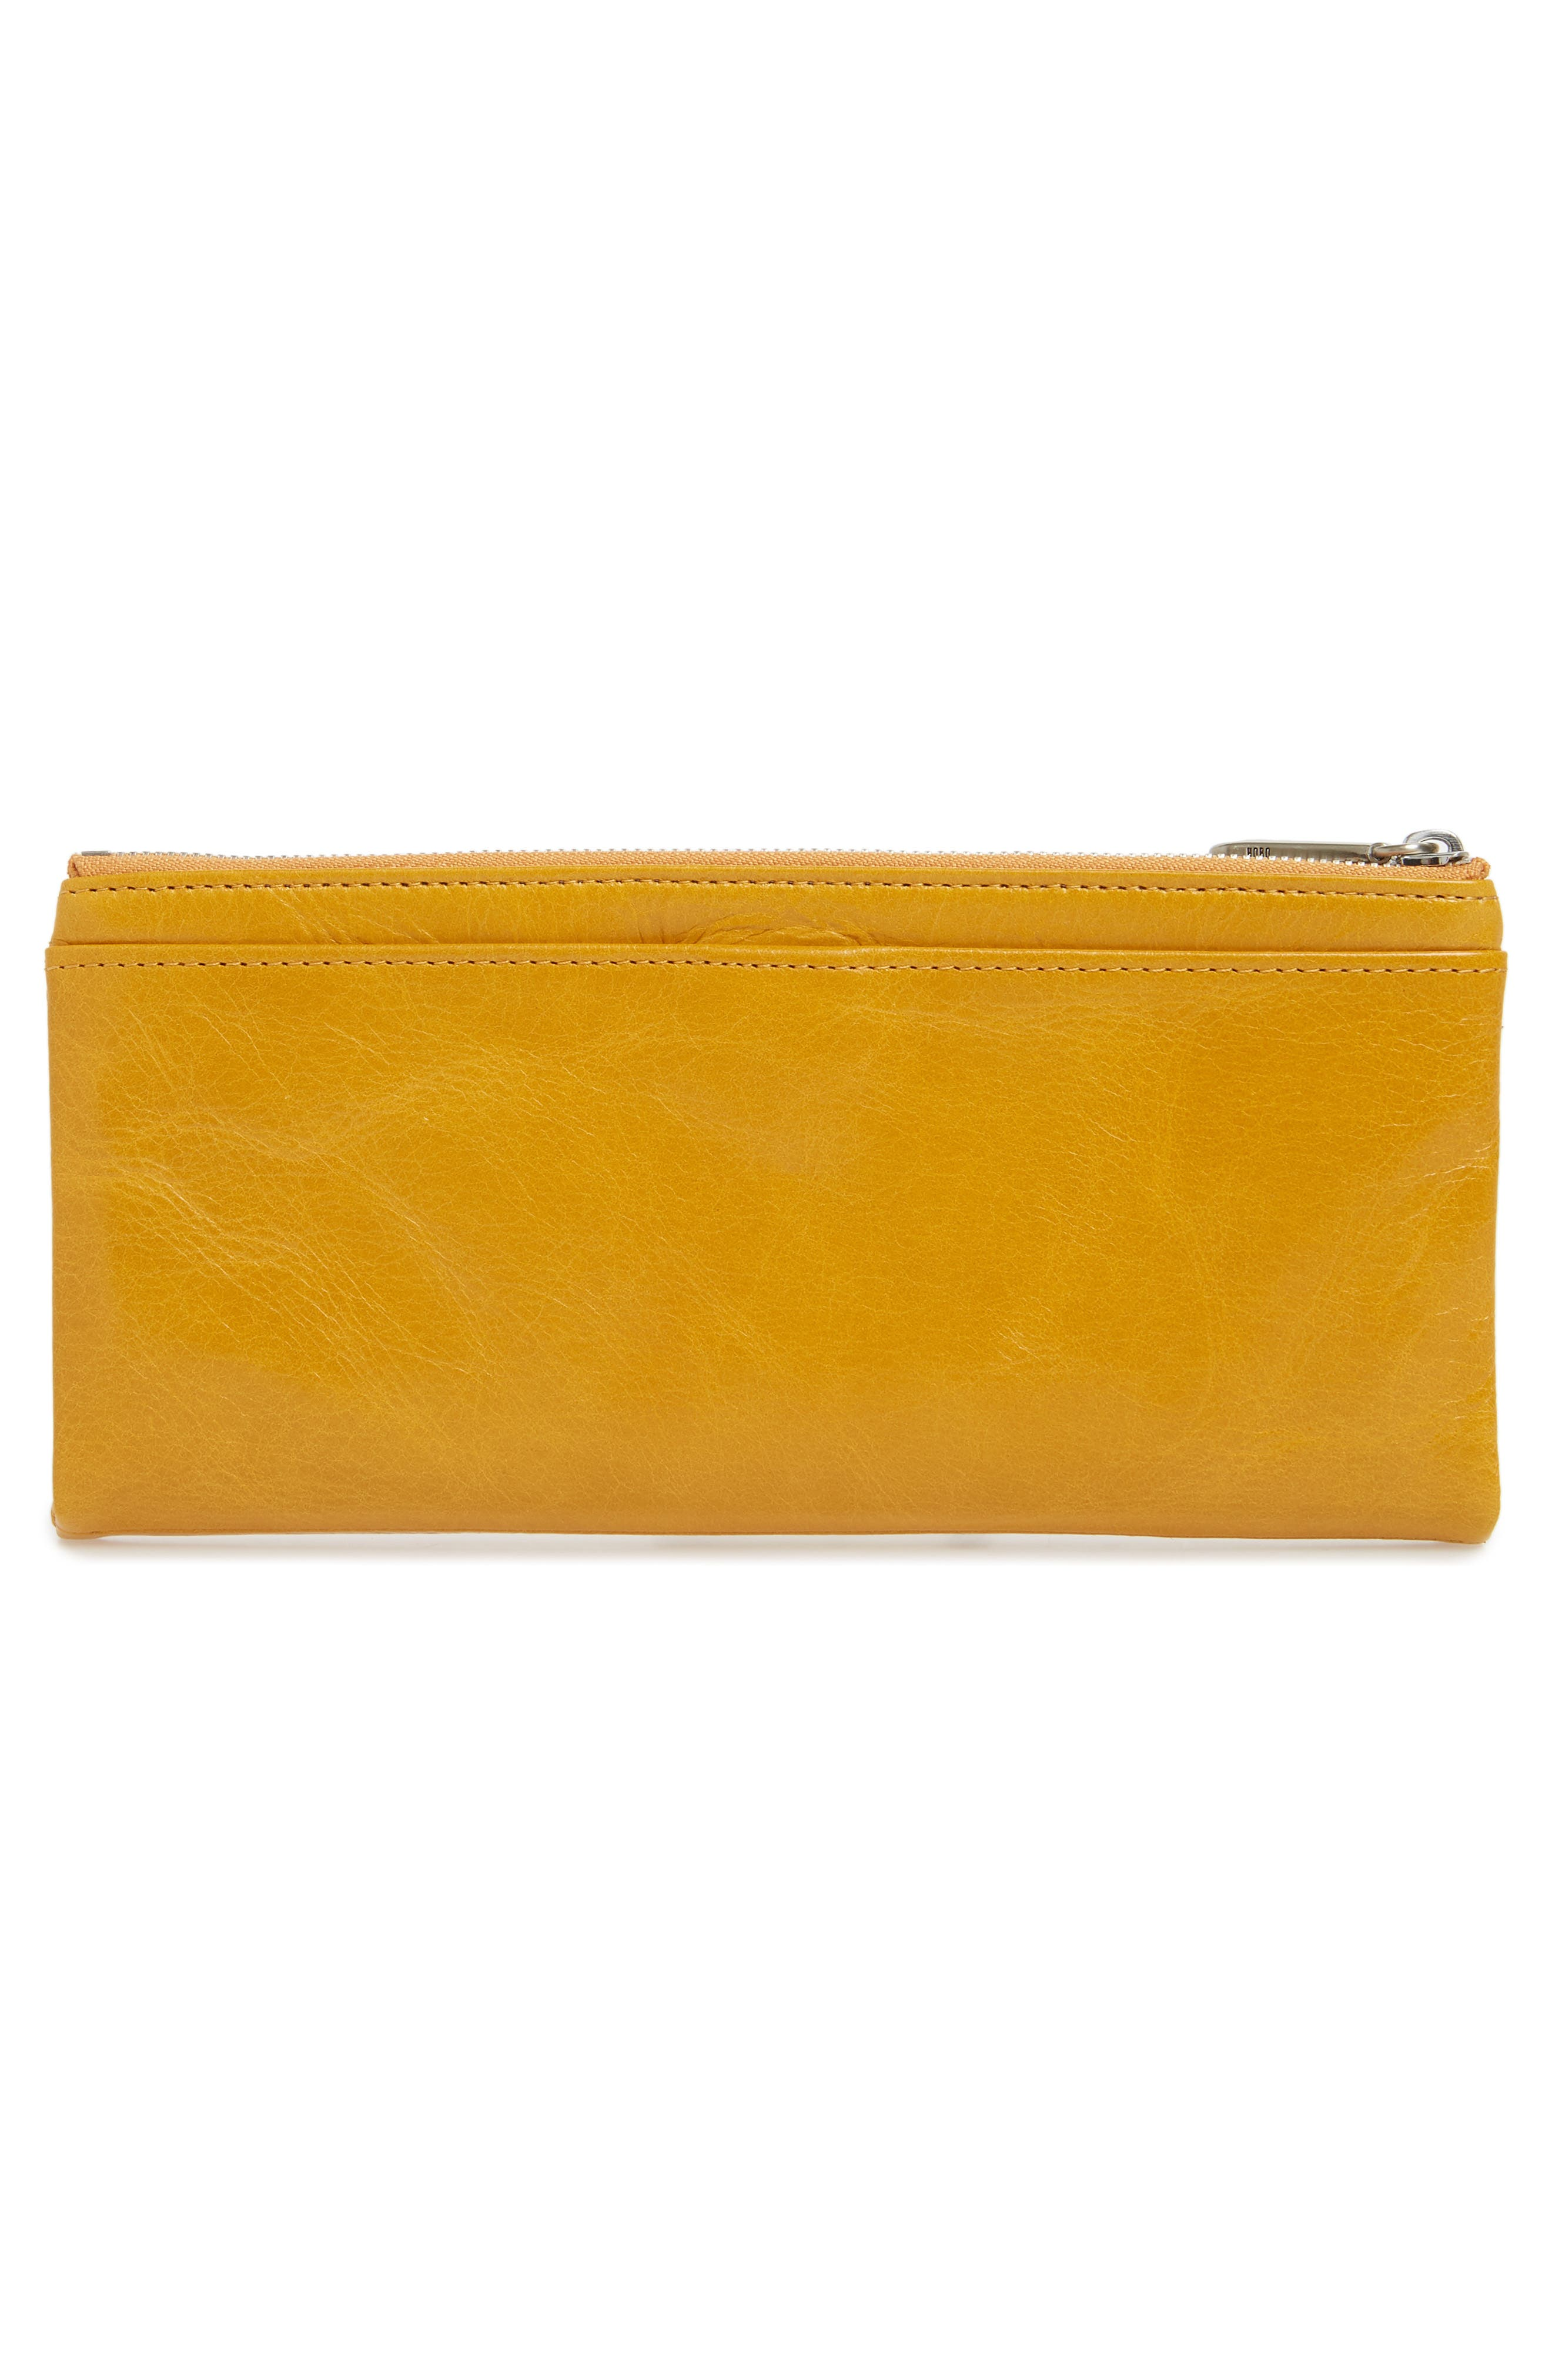 'Taylor' Glazed Leather Wallet,                             Alternate thumbnail 3, color,                             Amber